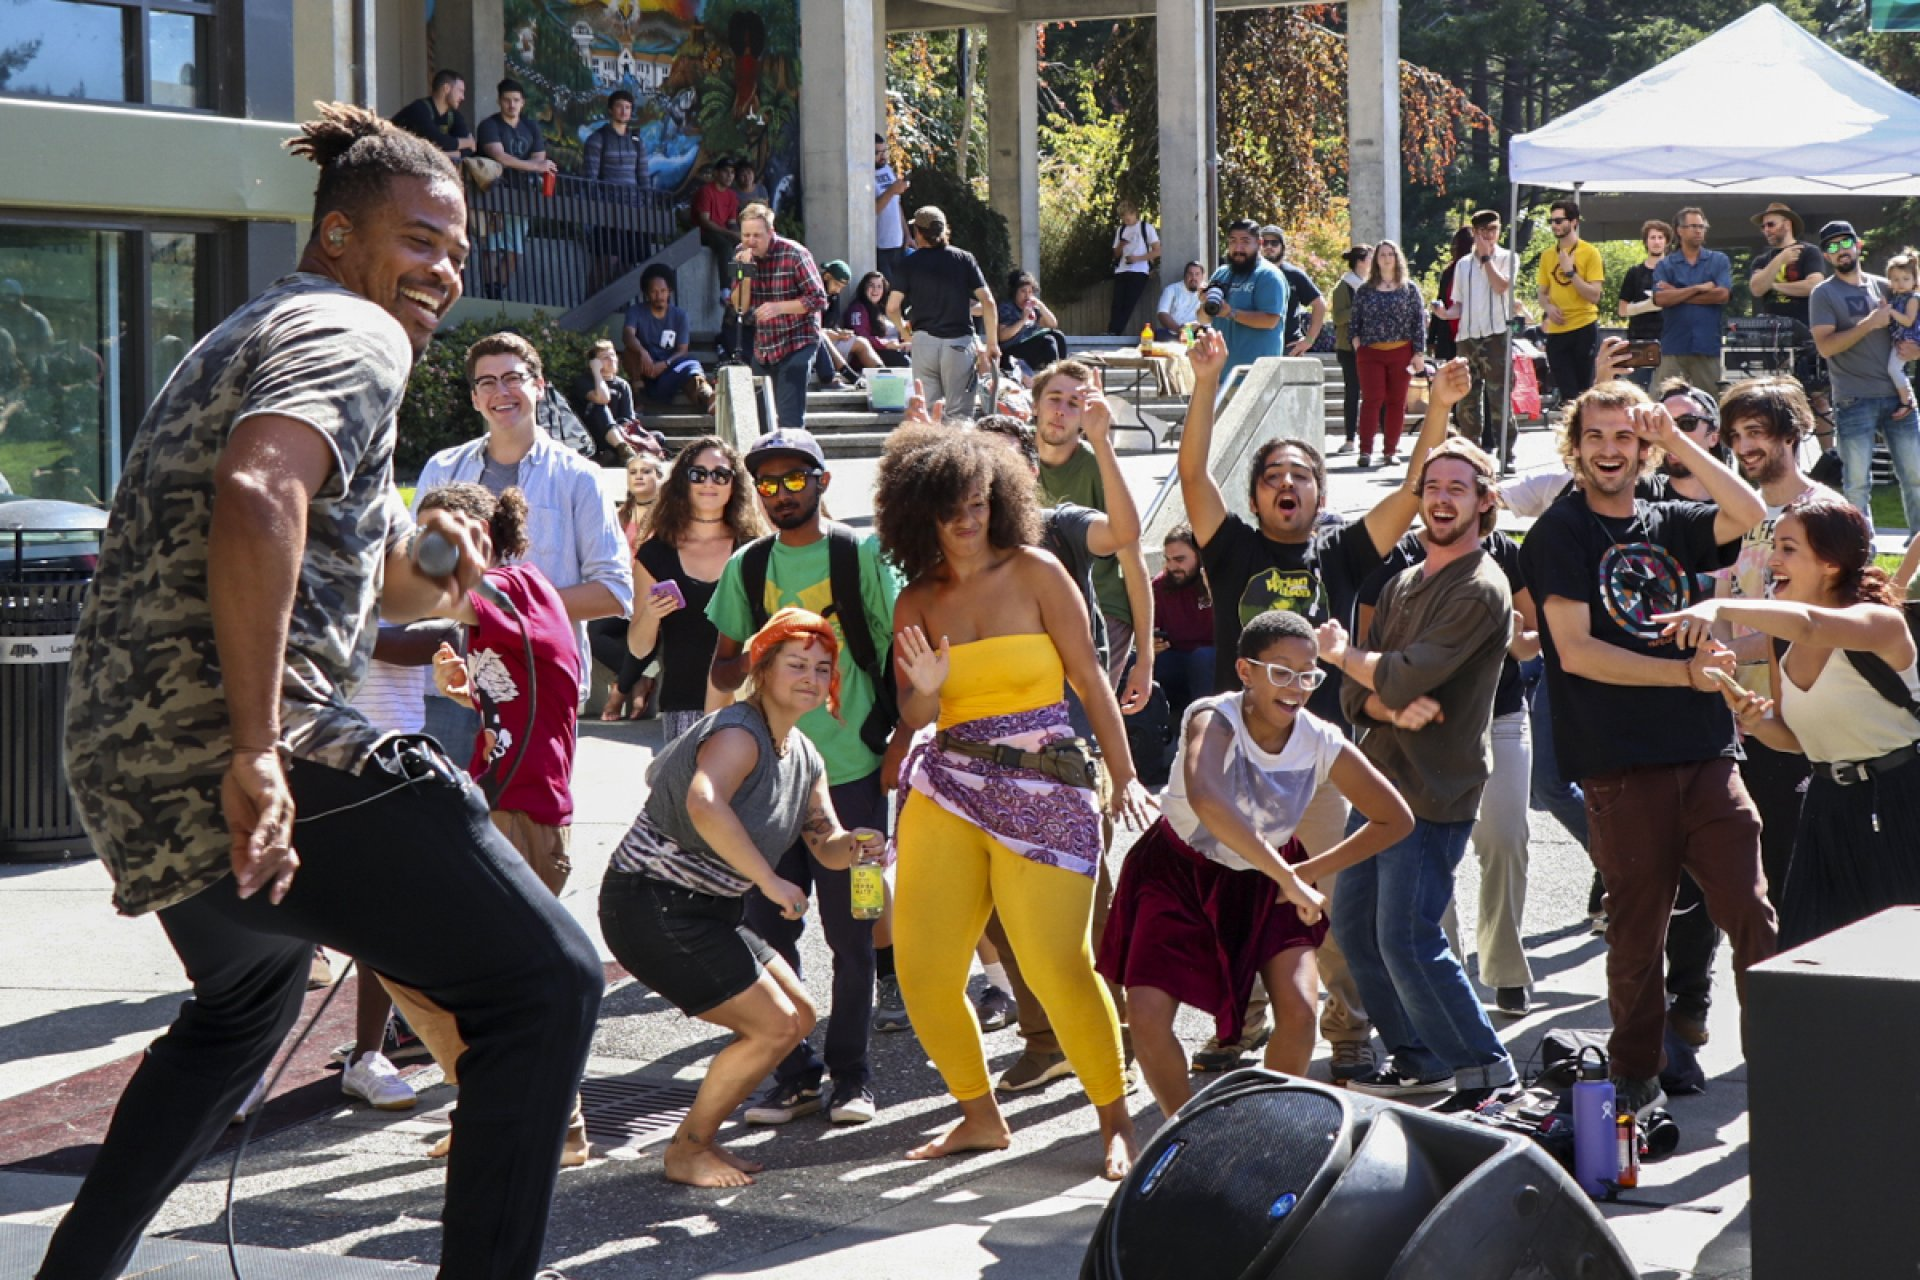 File photo: Baba Zumbi, also known as MC Zion, dances with Humboldt State students during Zion I's performance in the UC quad on Sept. 26, 2017. | Photo b Curran C. Daly